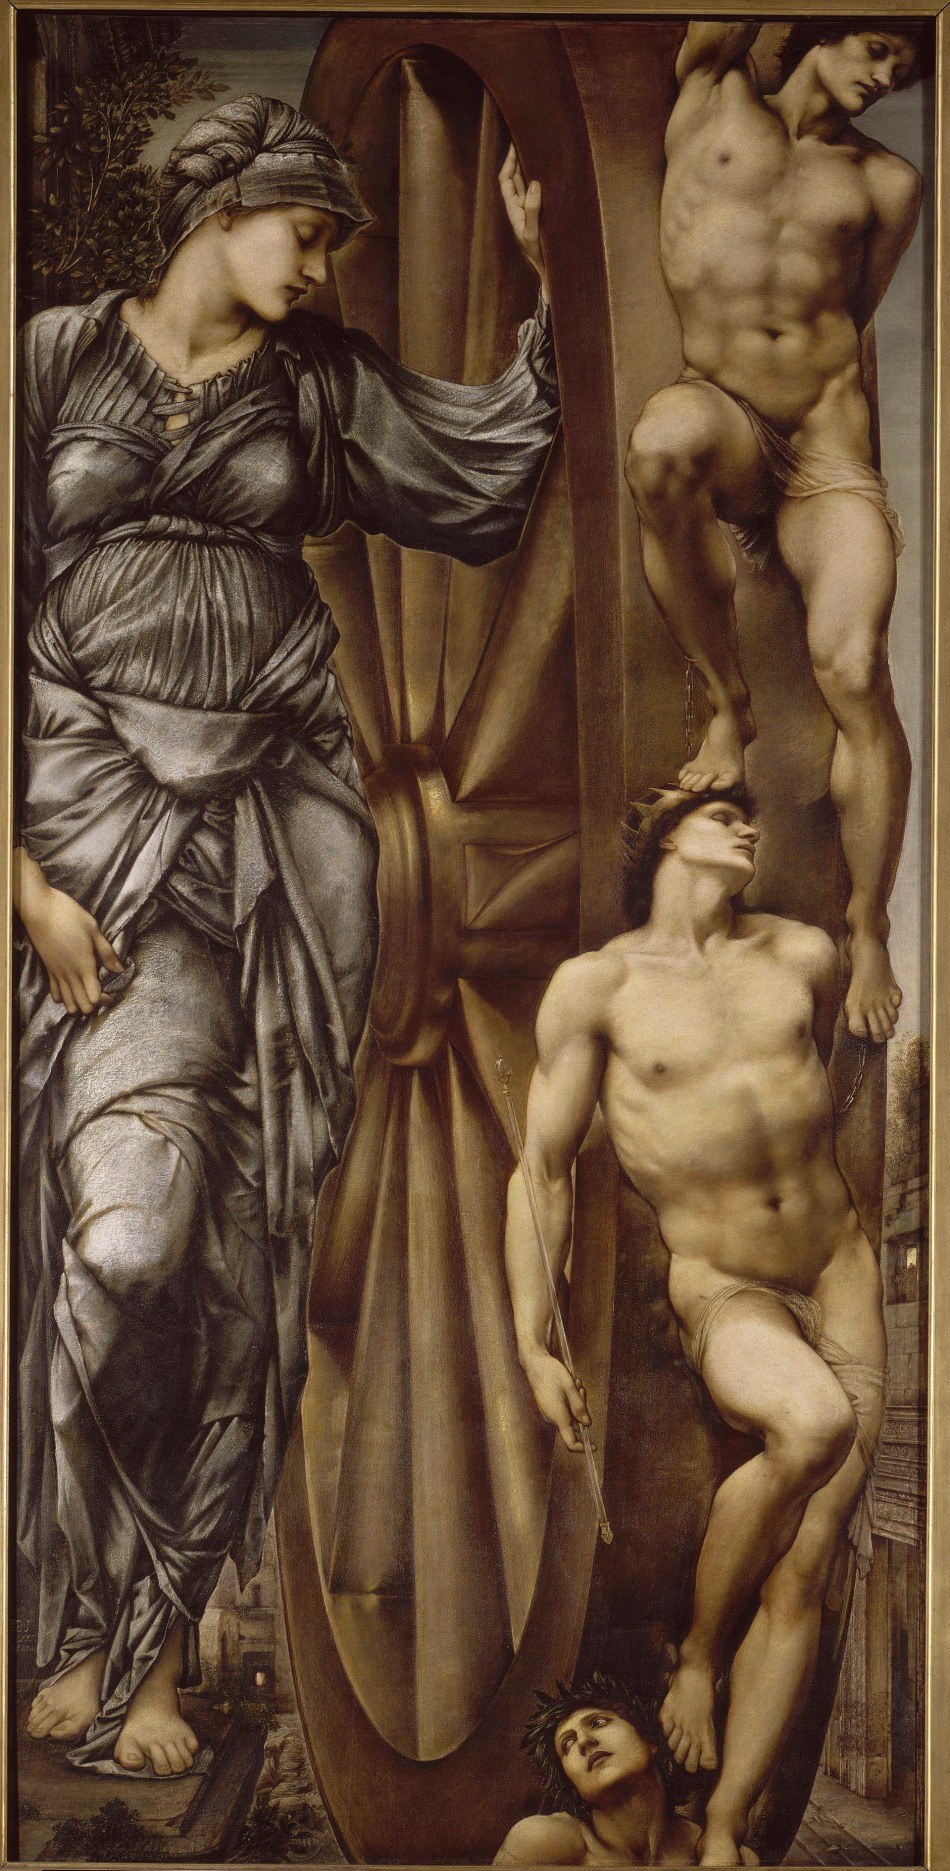 Edward Burne-Jones: The Wheel of Fortune.